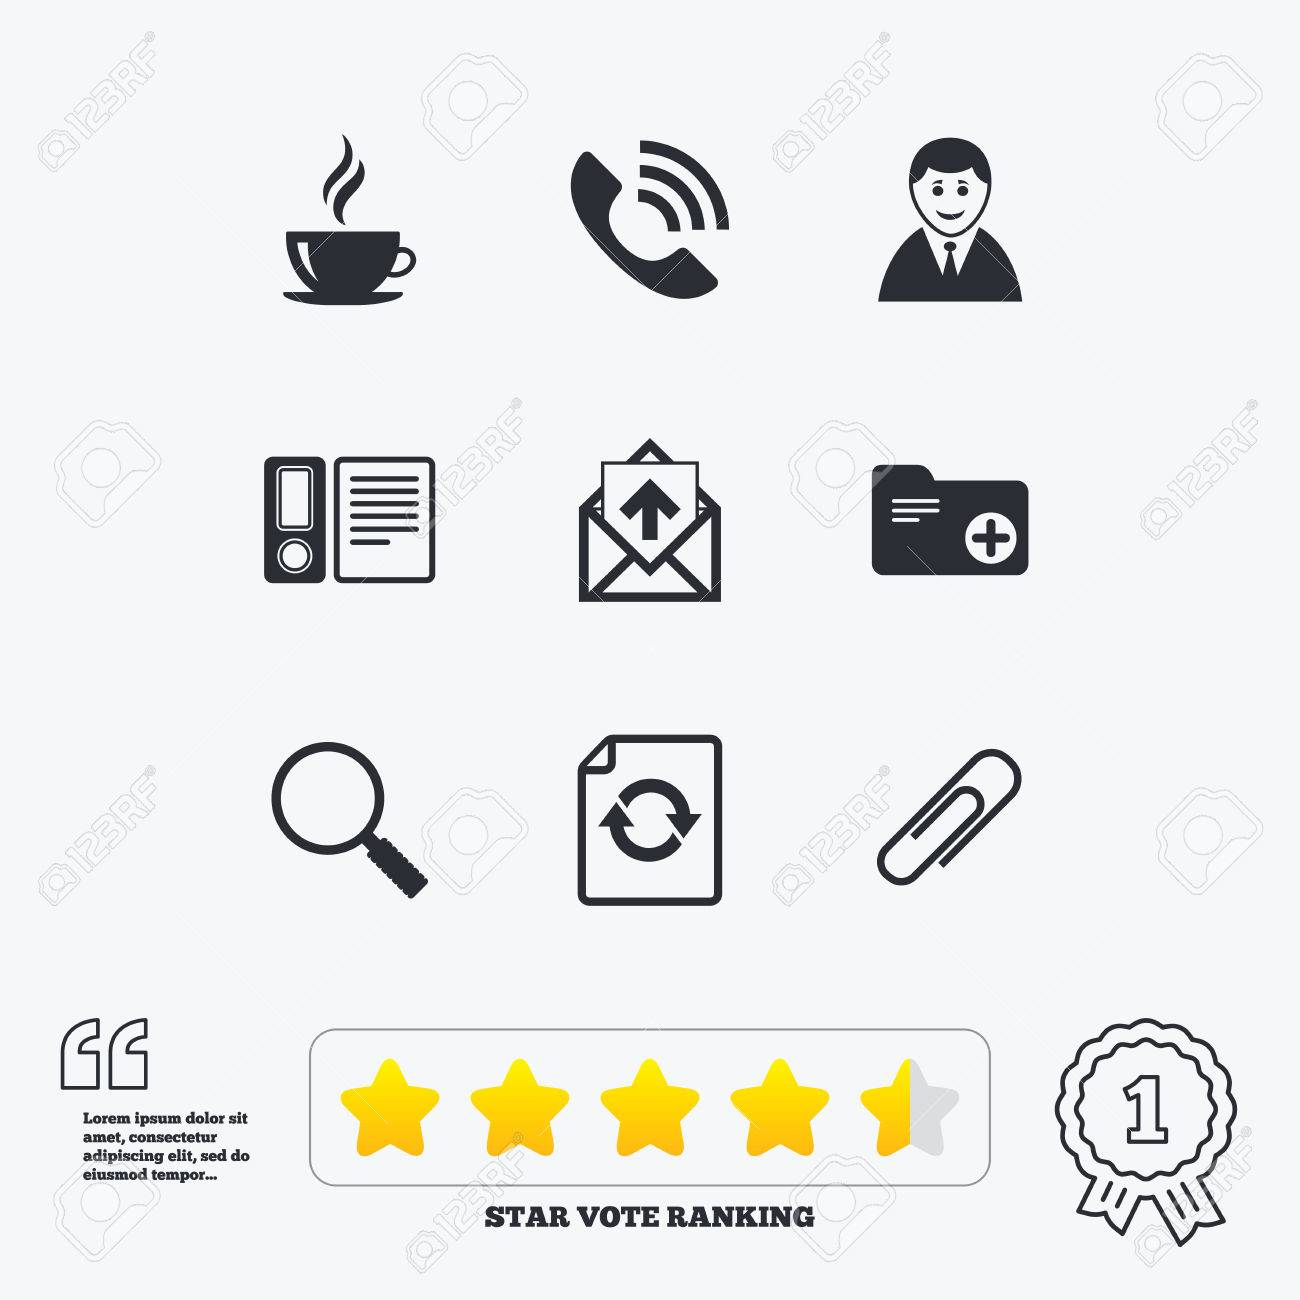 Phone Call Quotes Office Documents And Business Iconscoffee Phone Call And